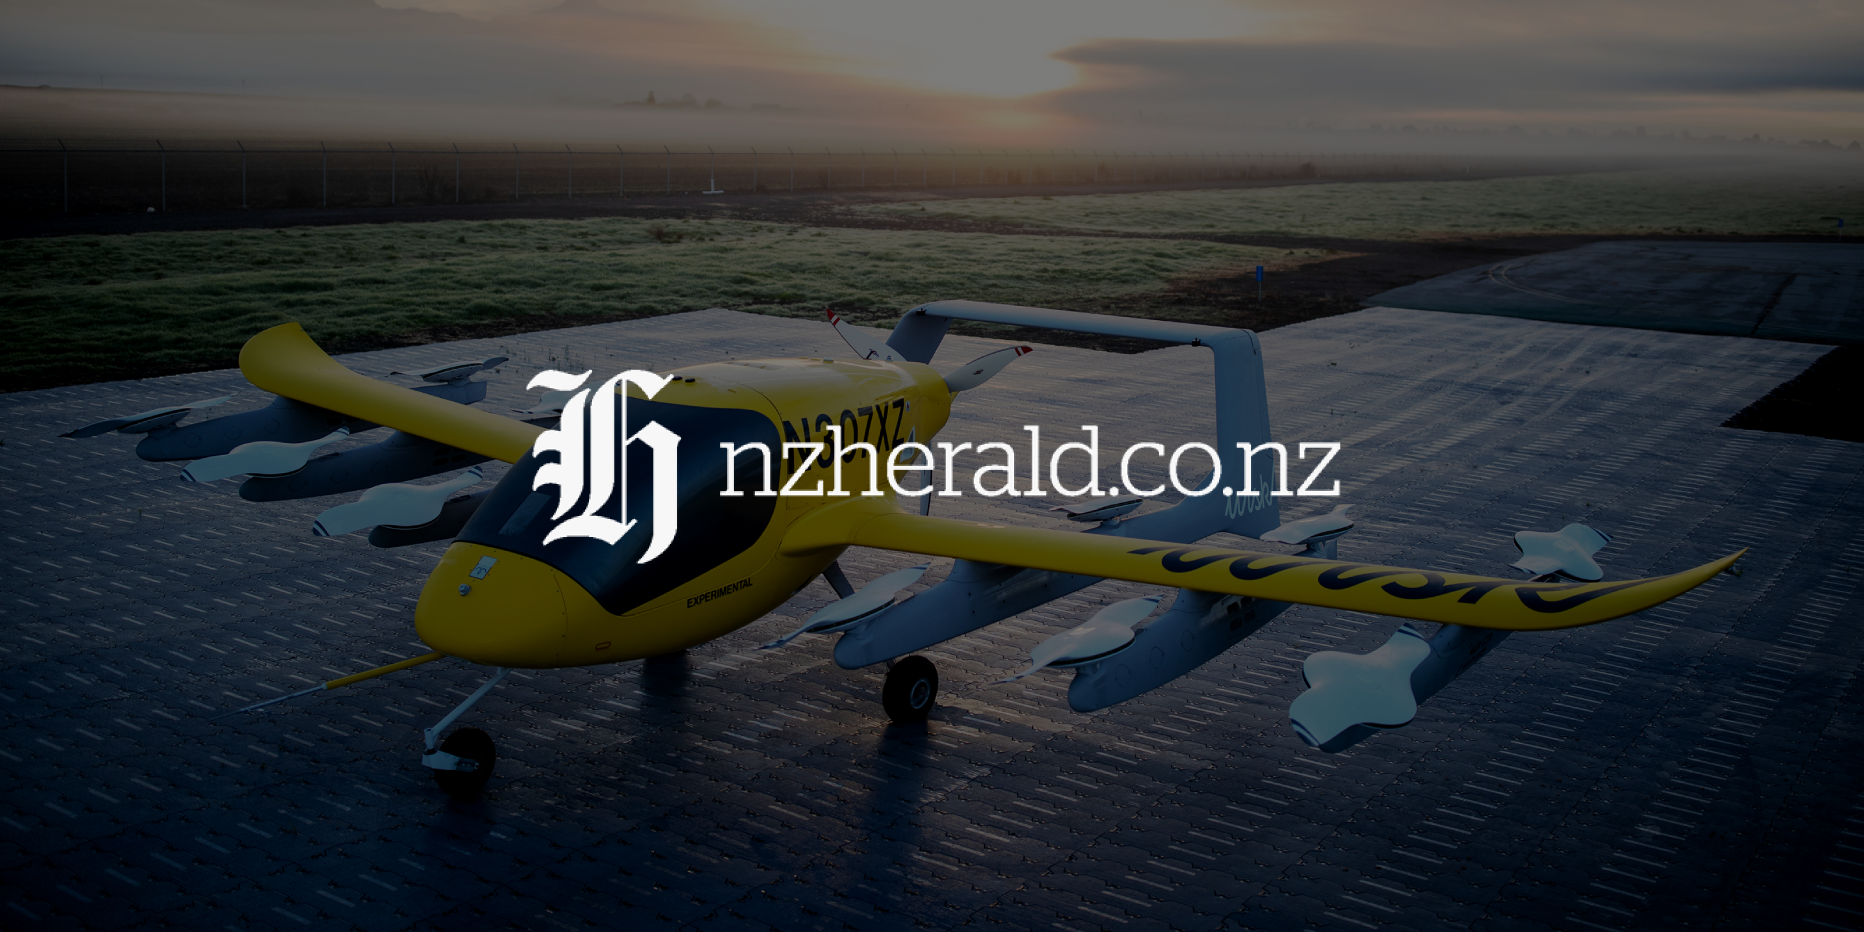 Wisk's self-flying electric air taxi on display in Christchurch for first time